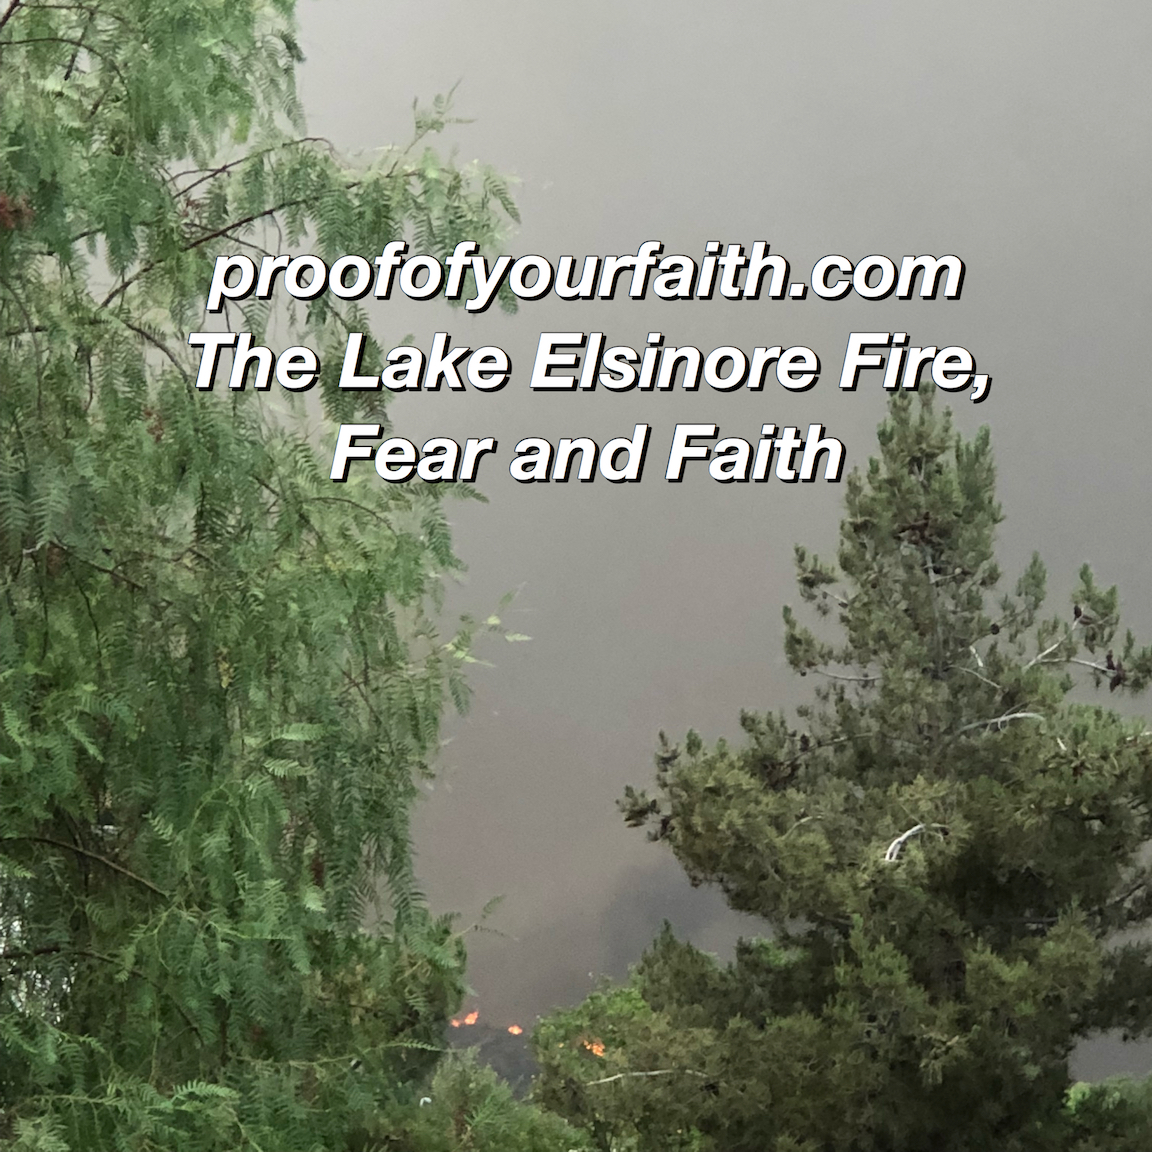 The Lake Elsinore Fire, Fear and Faith